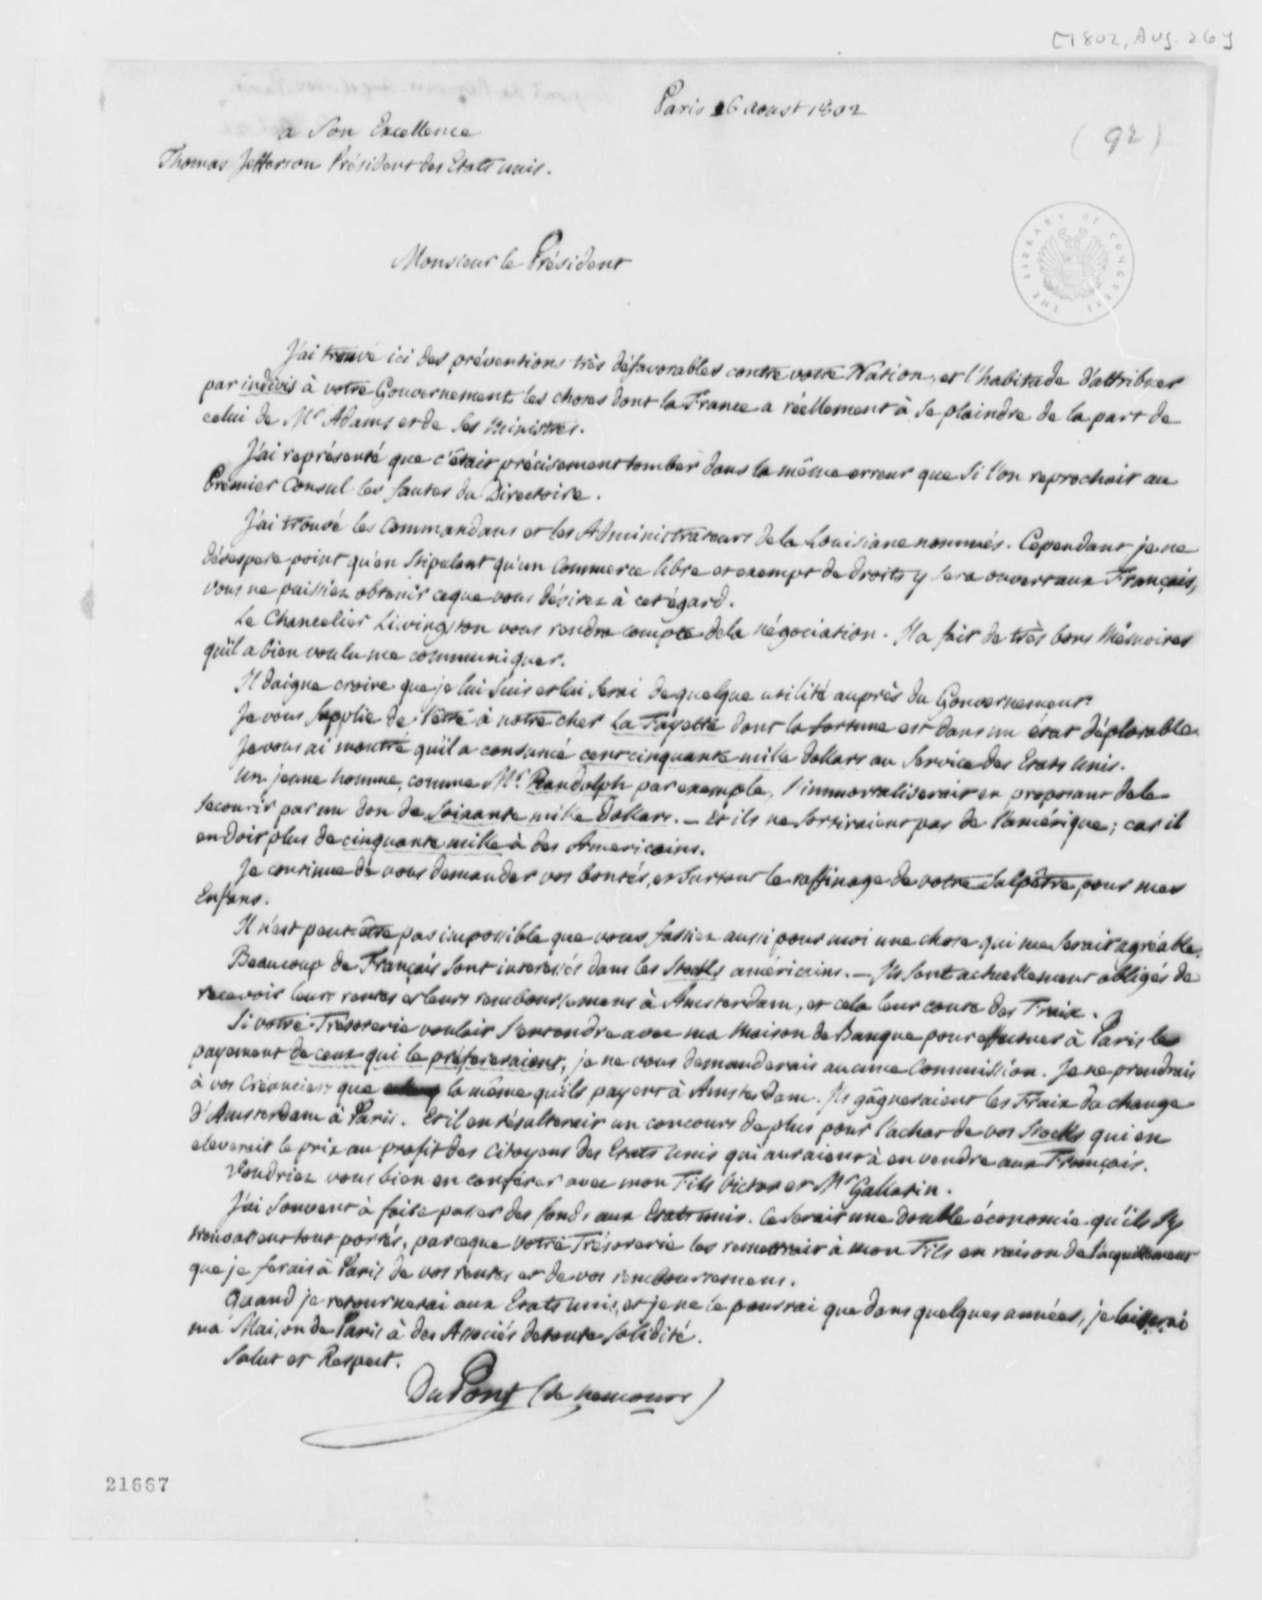 Pierre S. Dupont de Nemours to Thomas Jefferson, August 26, 1802, in French